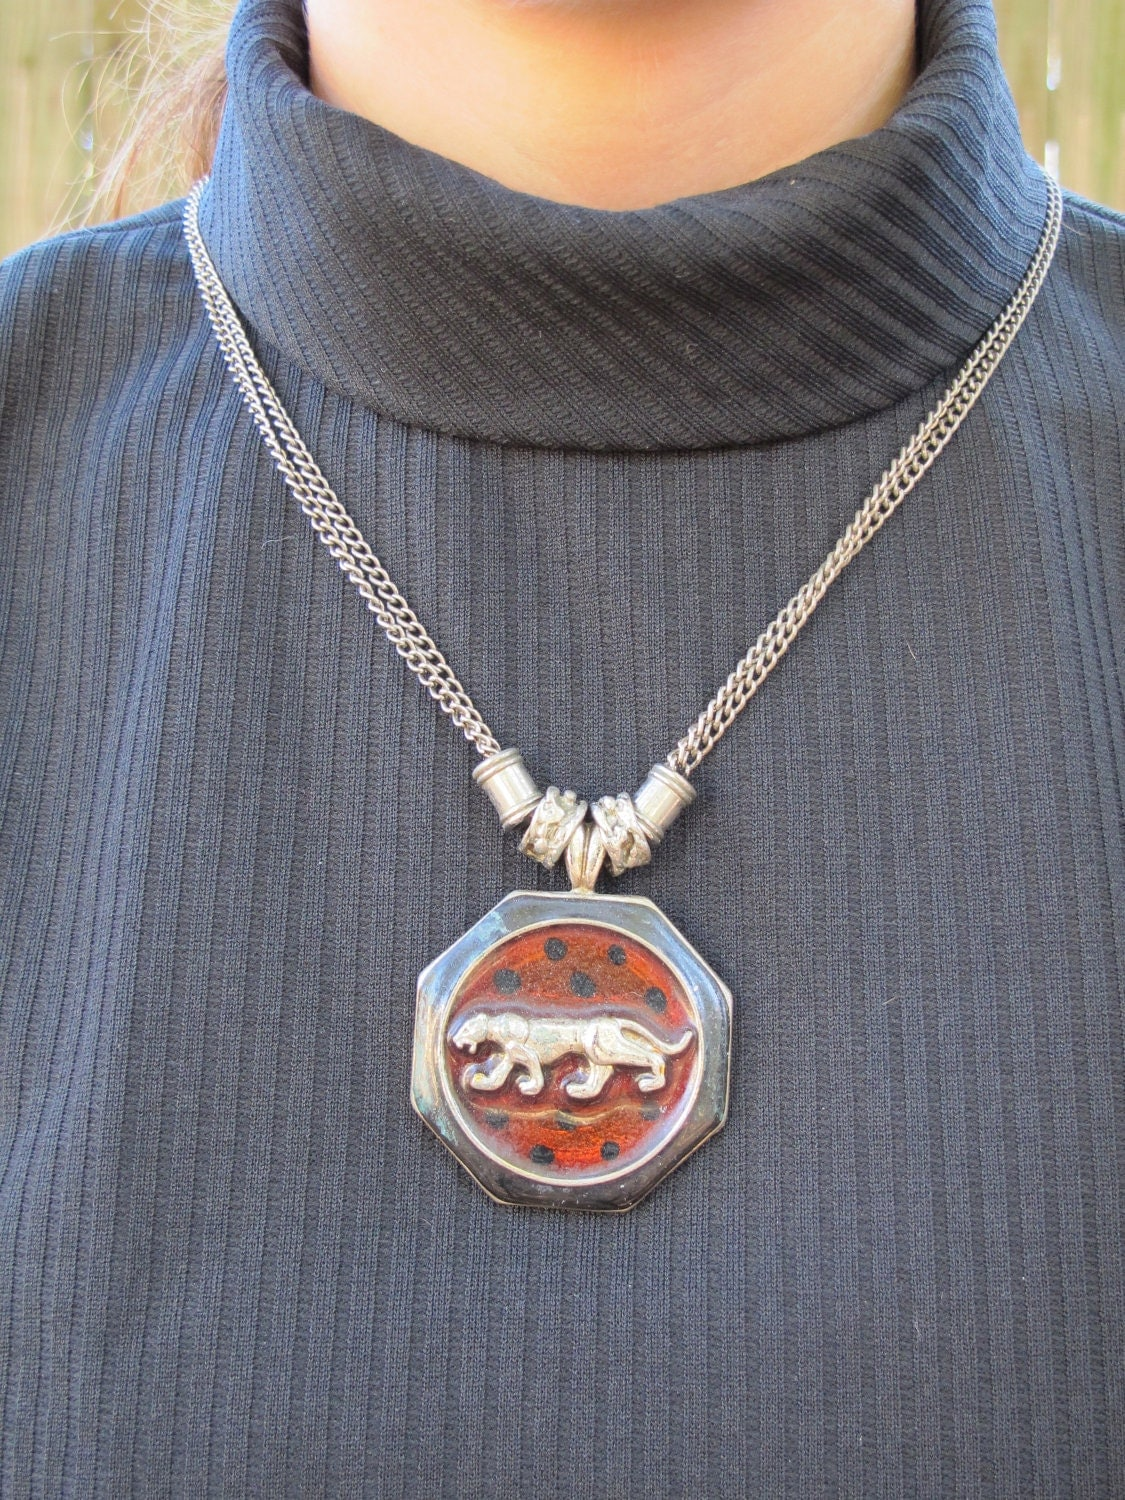 items similar to vintage 70s 80s panther necklace disco